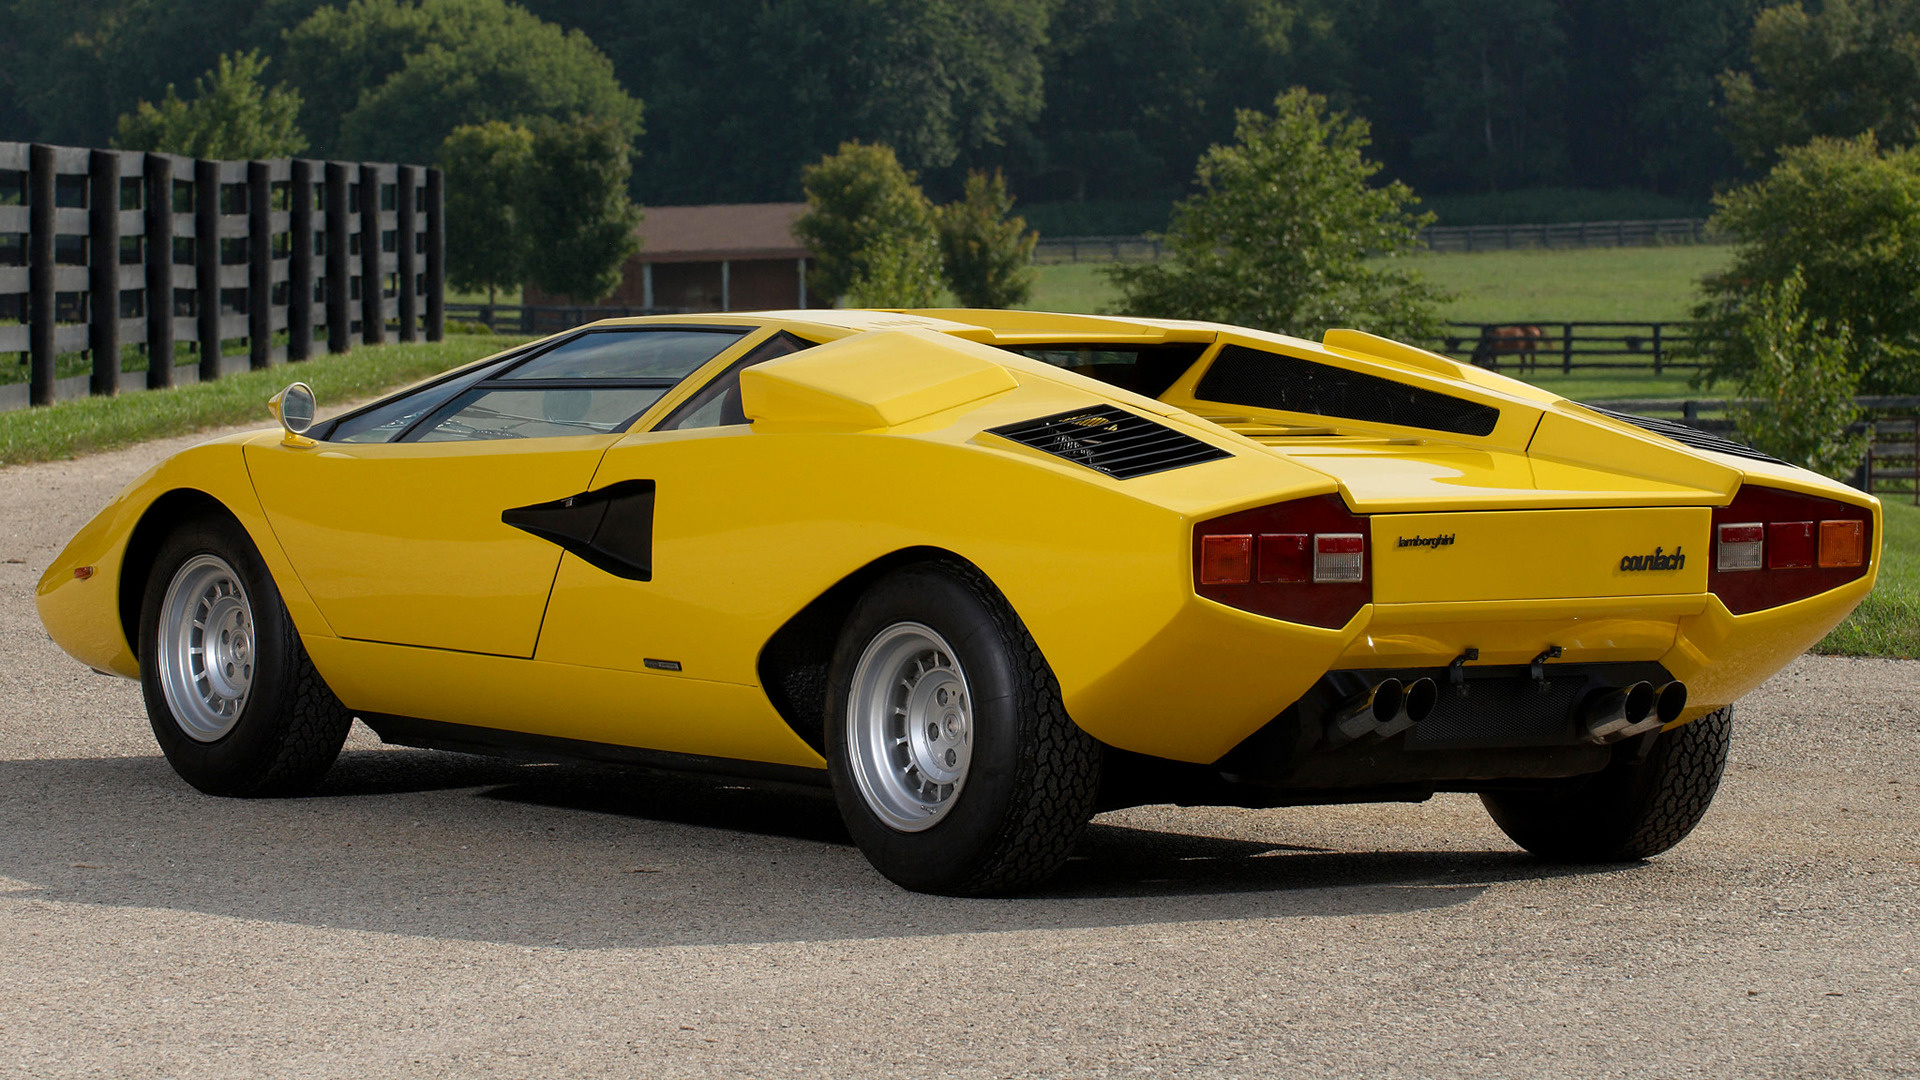 lamborghini countach 1974 uk wallpapers and hd images. Black Bedroom Furniture Sets. Home Design Ideas